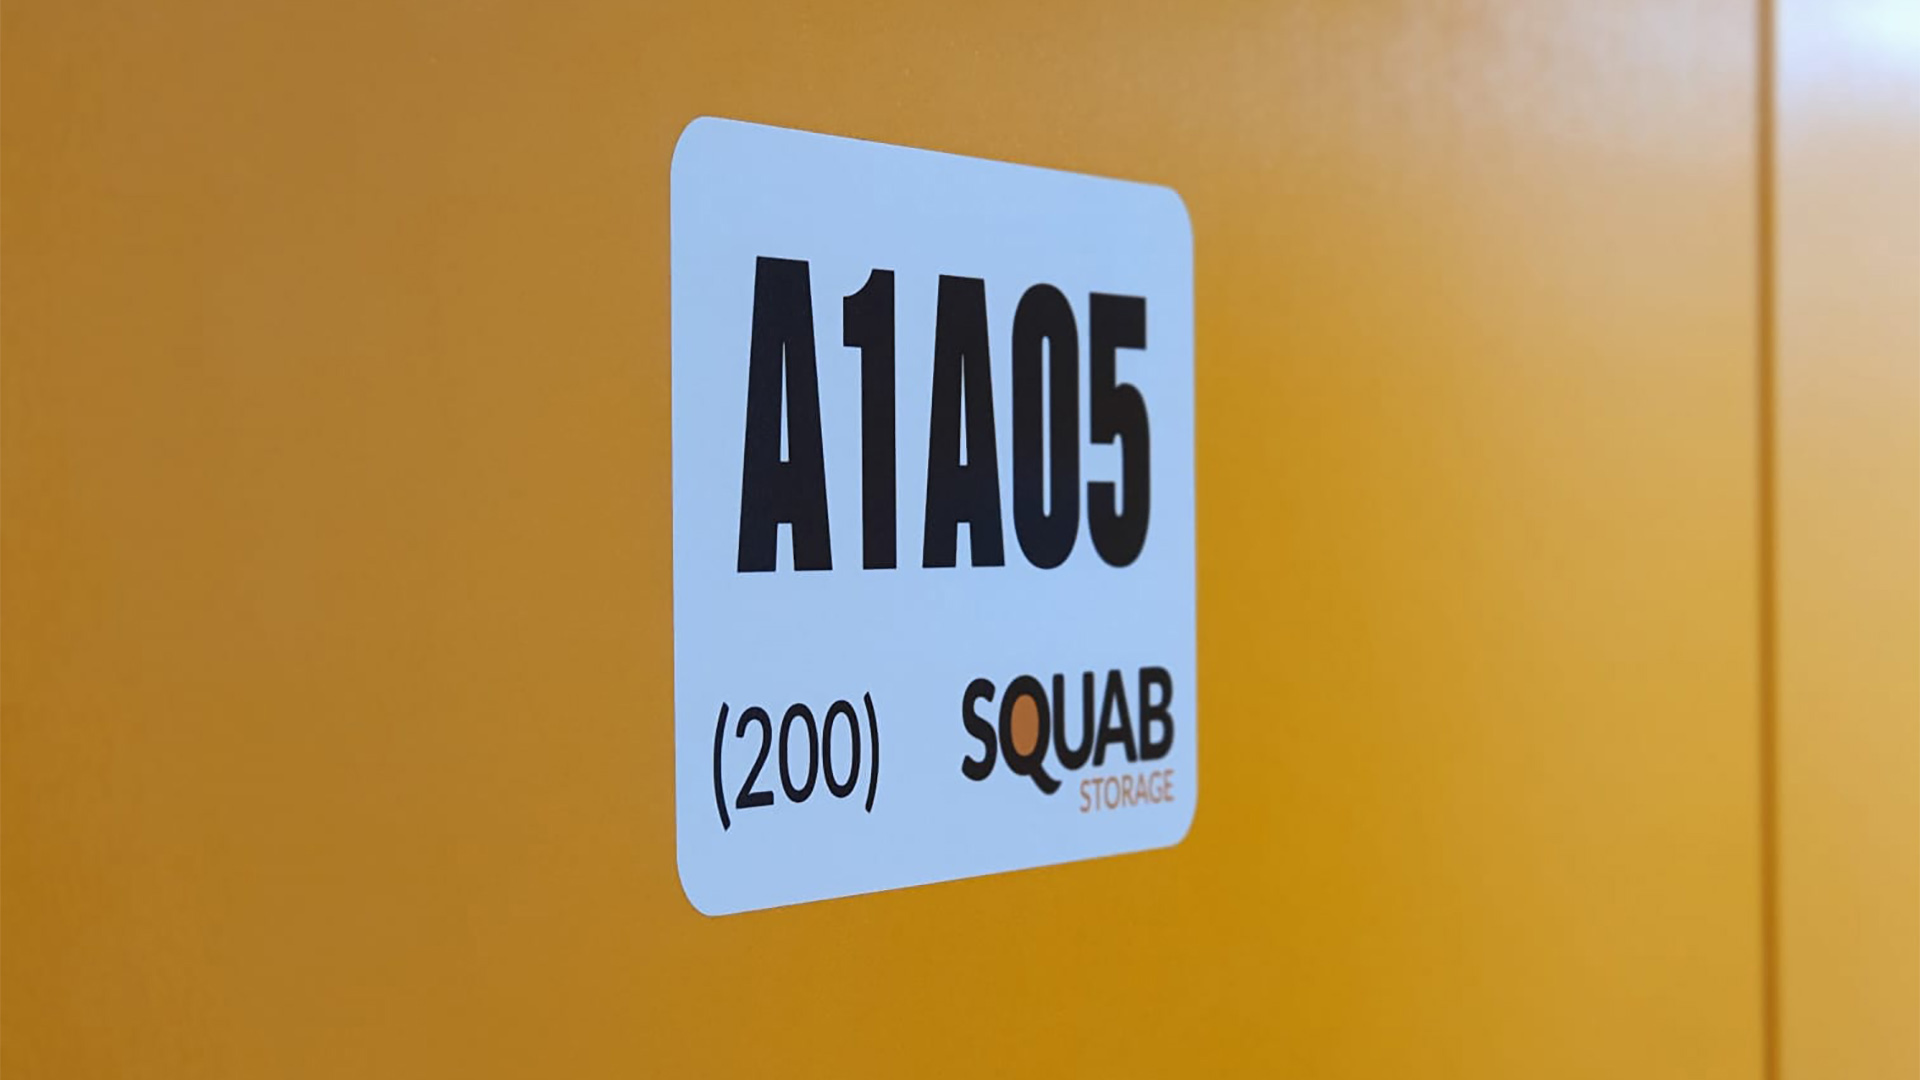 Different Uses for Storage - Squab